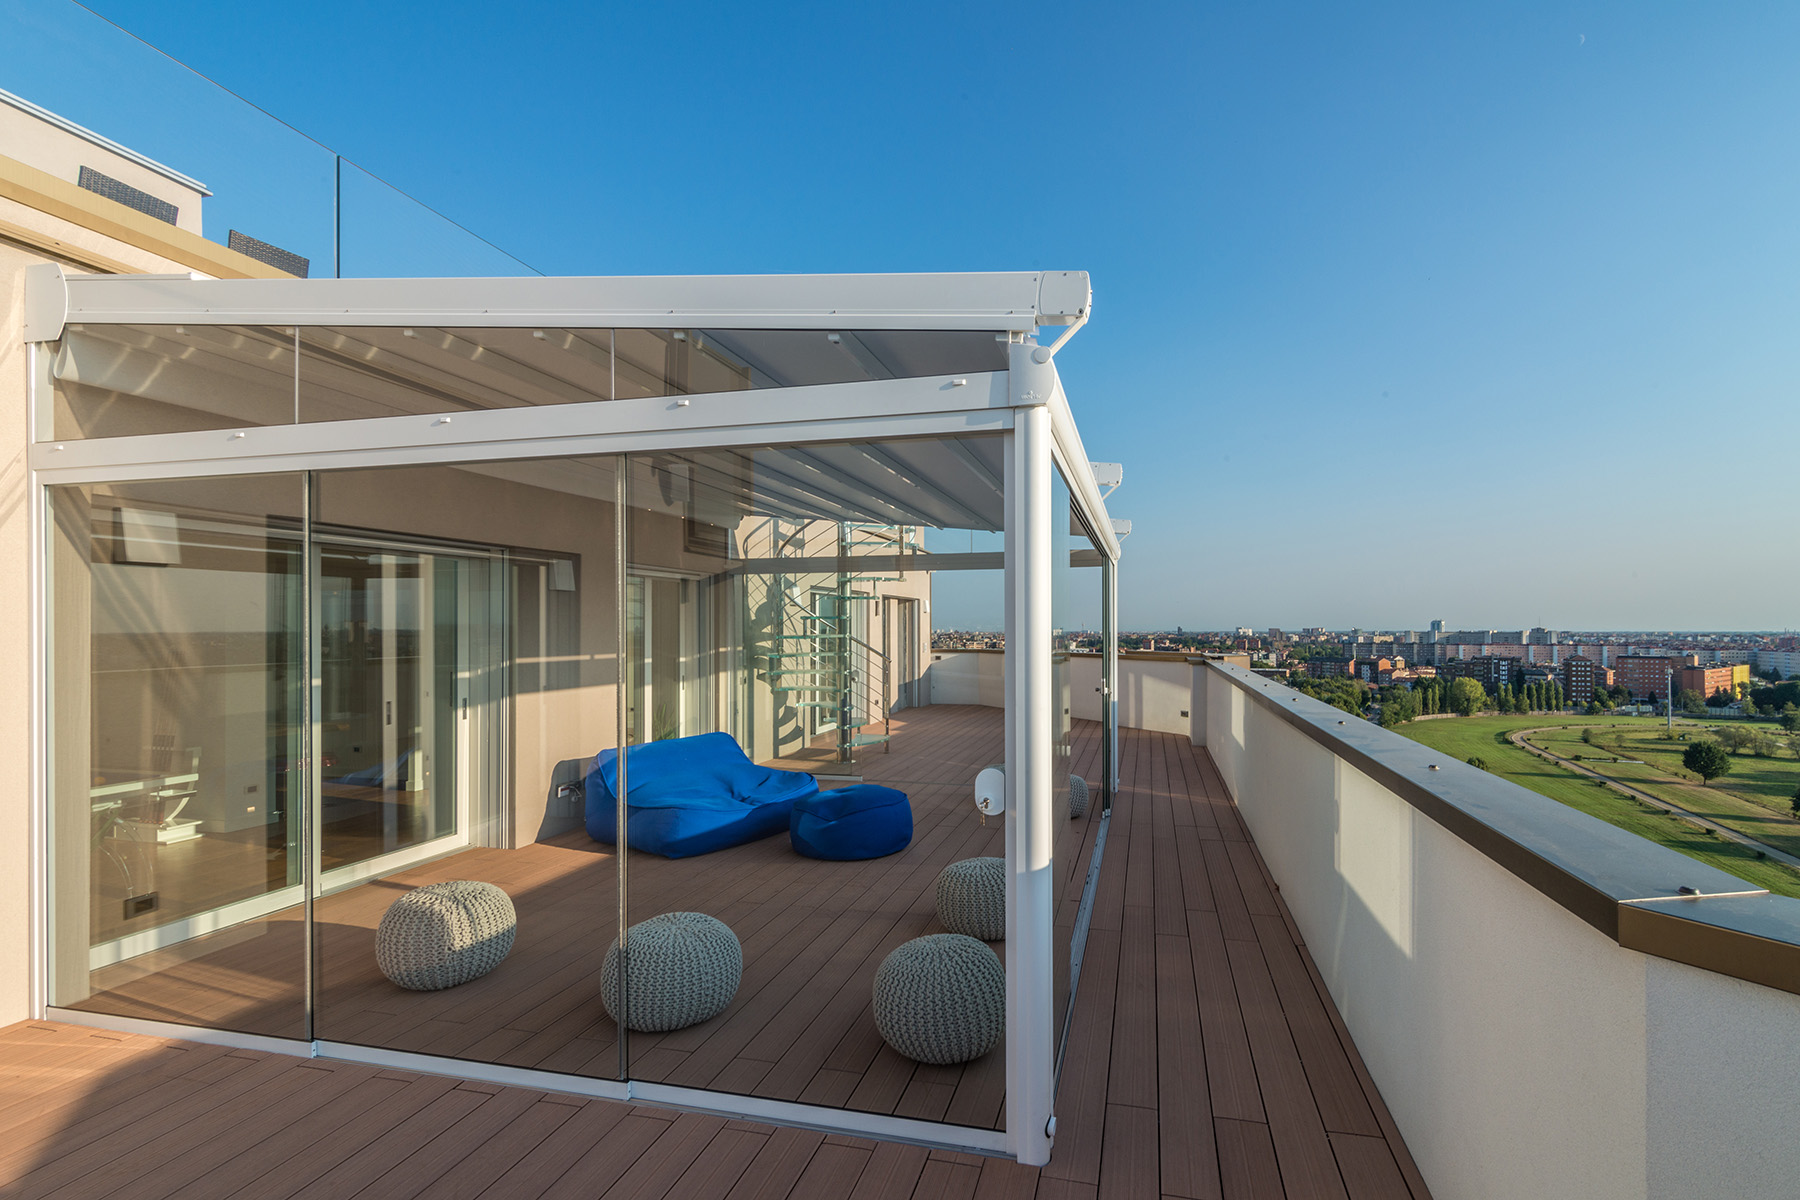 Additional photo for property listing at Unique triplex with panoramic pool and views of the skyline and beyond Via Pinerolo Milano, Milan 20121 Italy